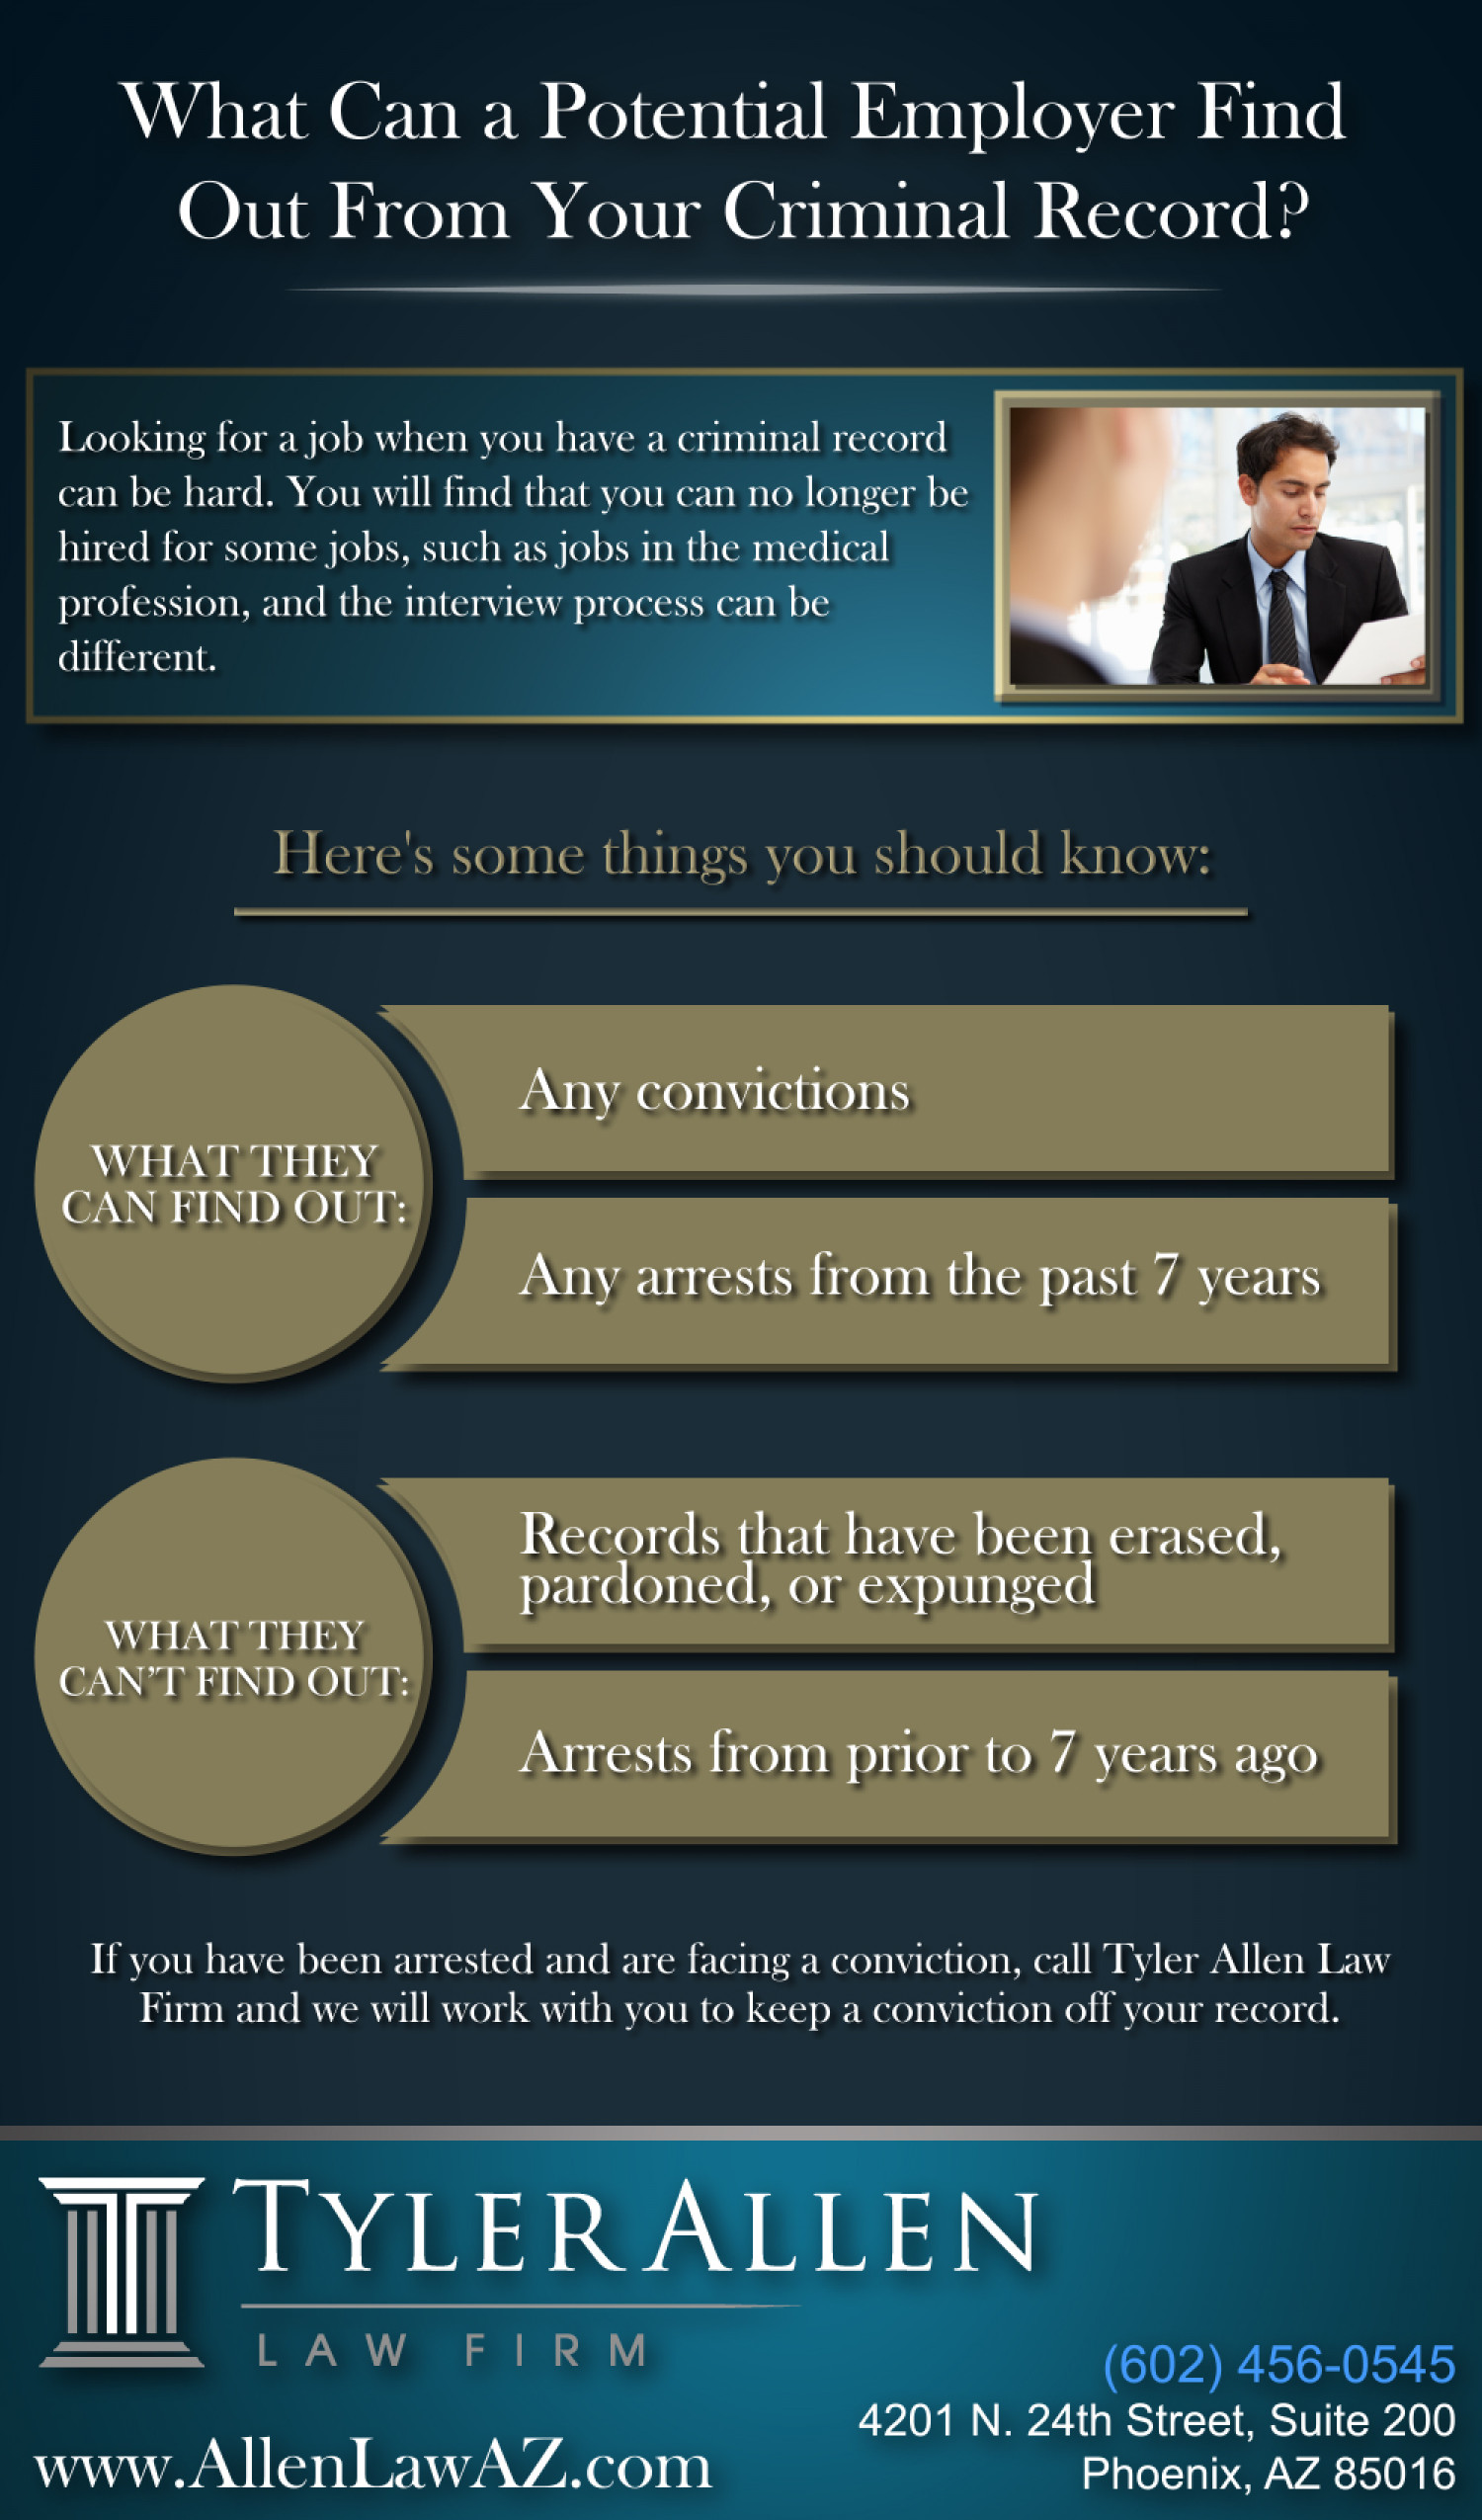 What Can a Potential Employer Find Out From Your Criminal Record? Infographic